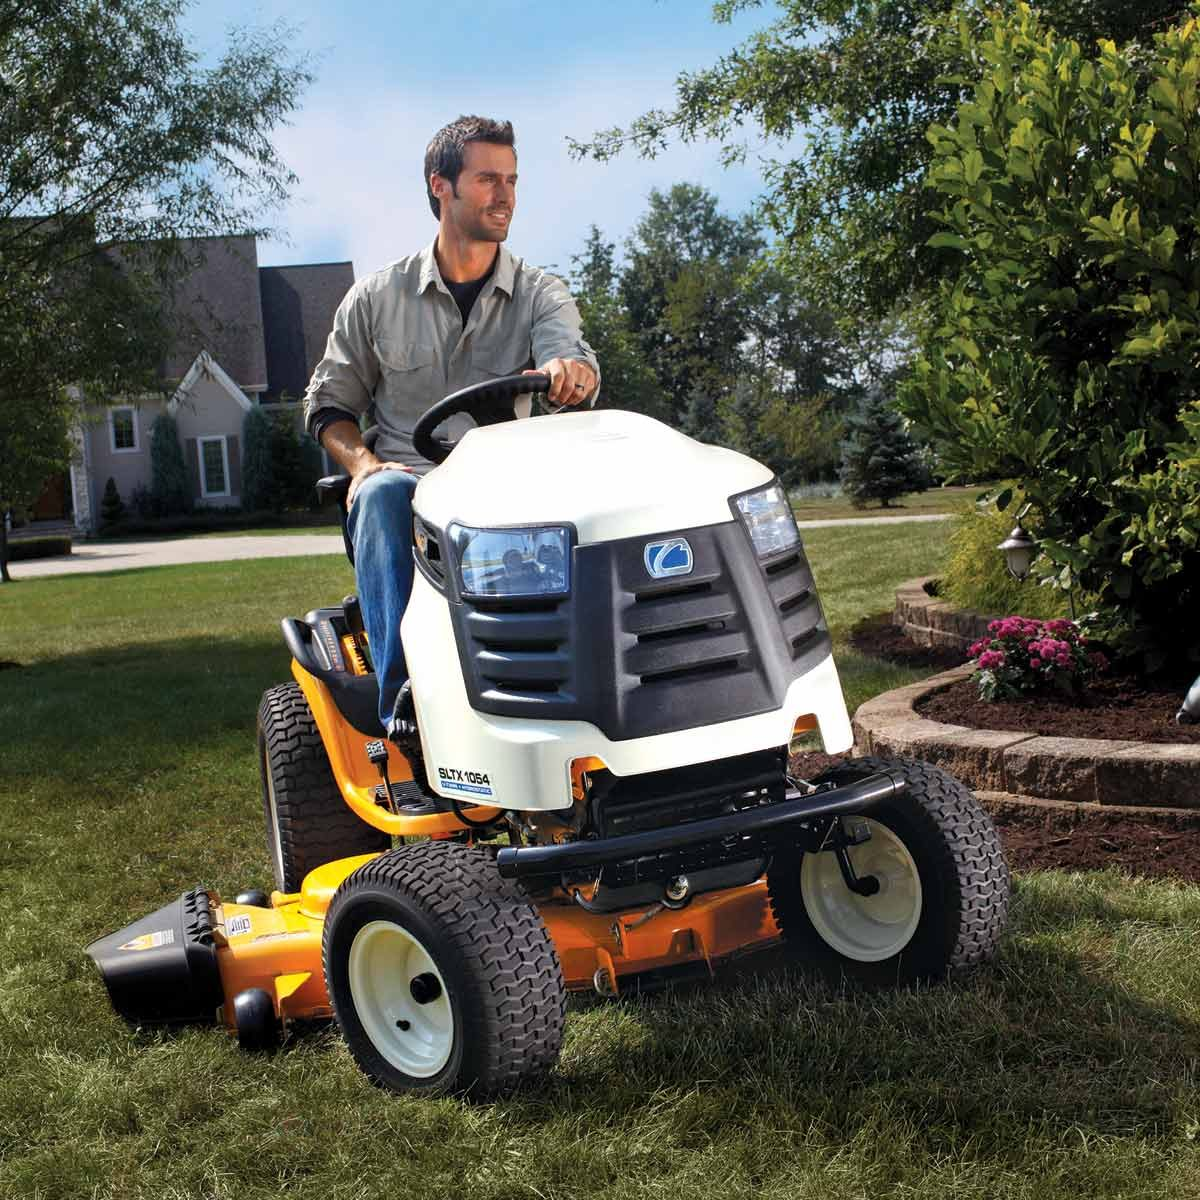 Shopping for a New Riding Mower